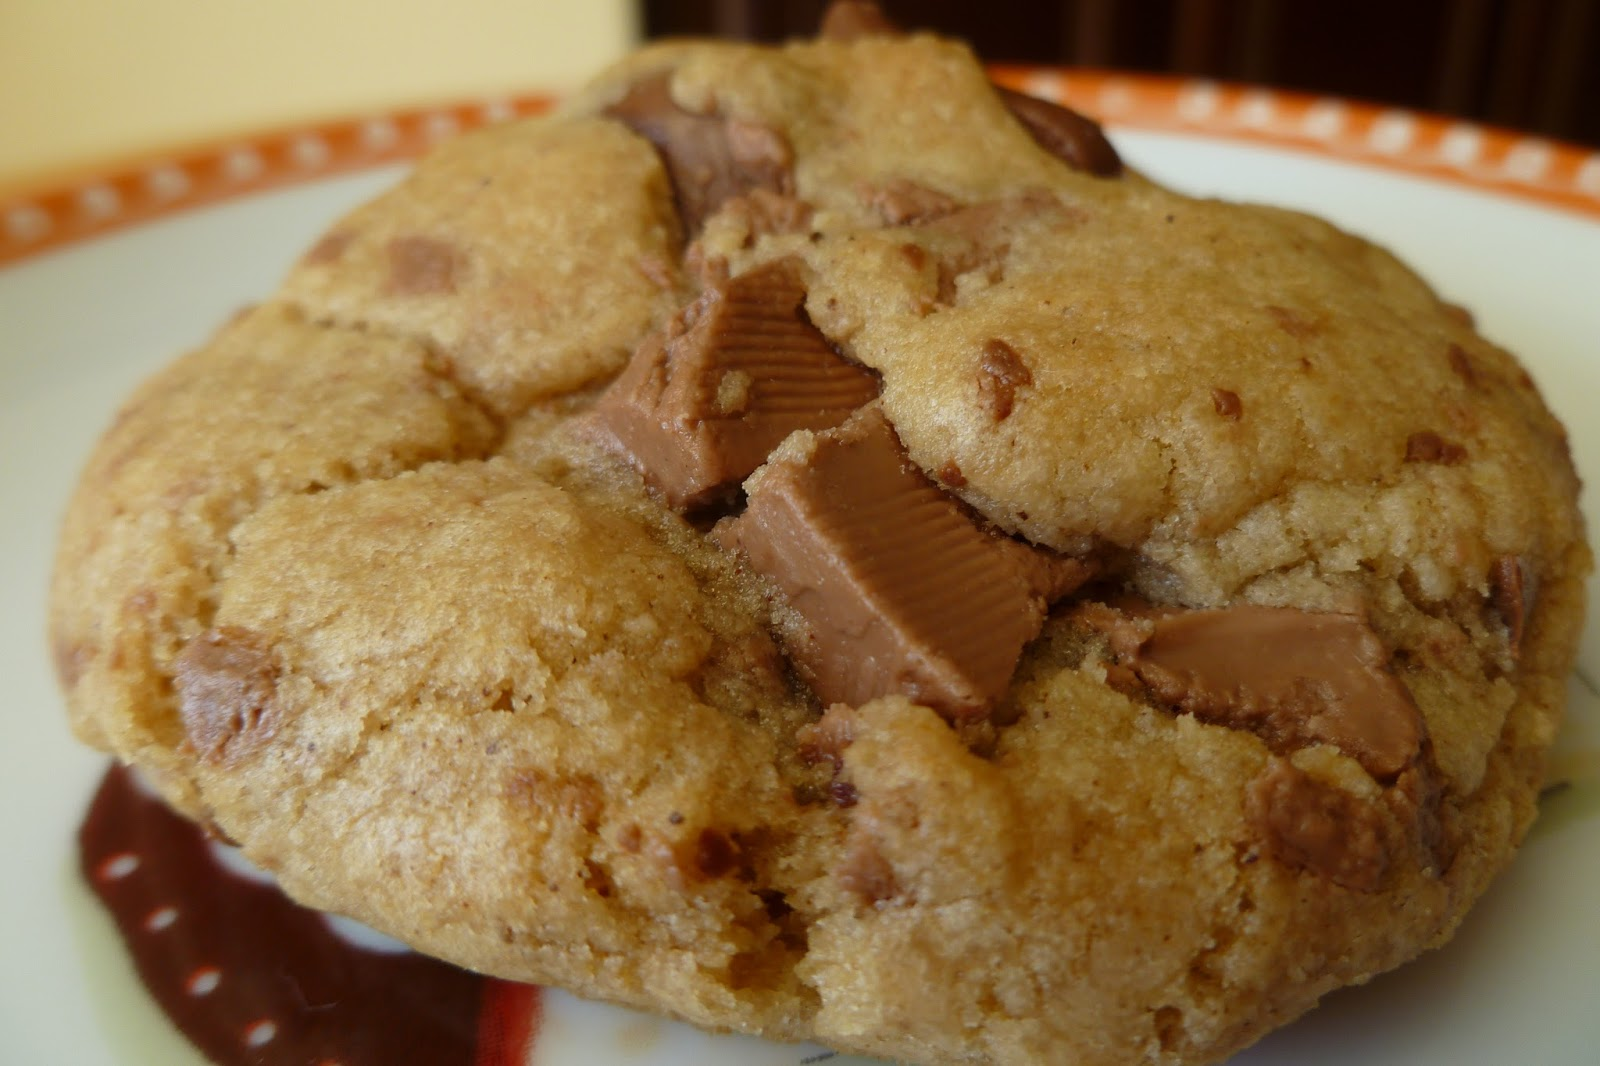 The Pastry Chef's Baking: Bakery Style Chocolate Chip Cookies